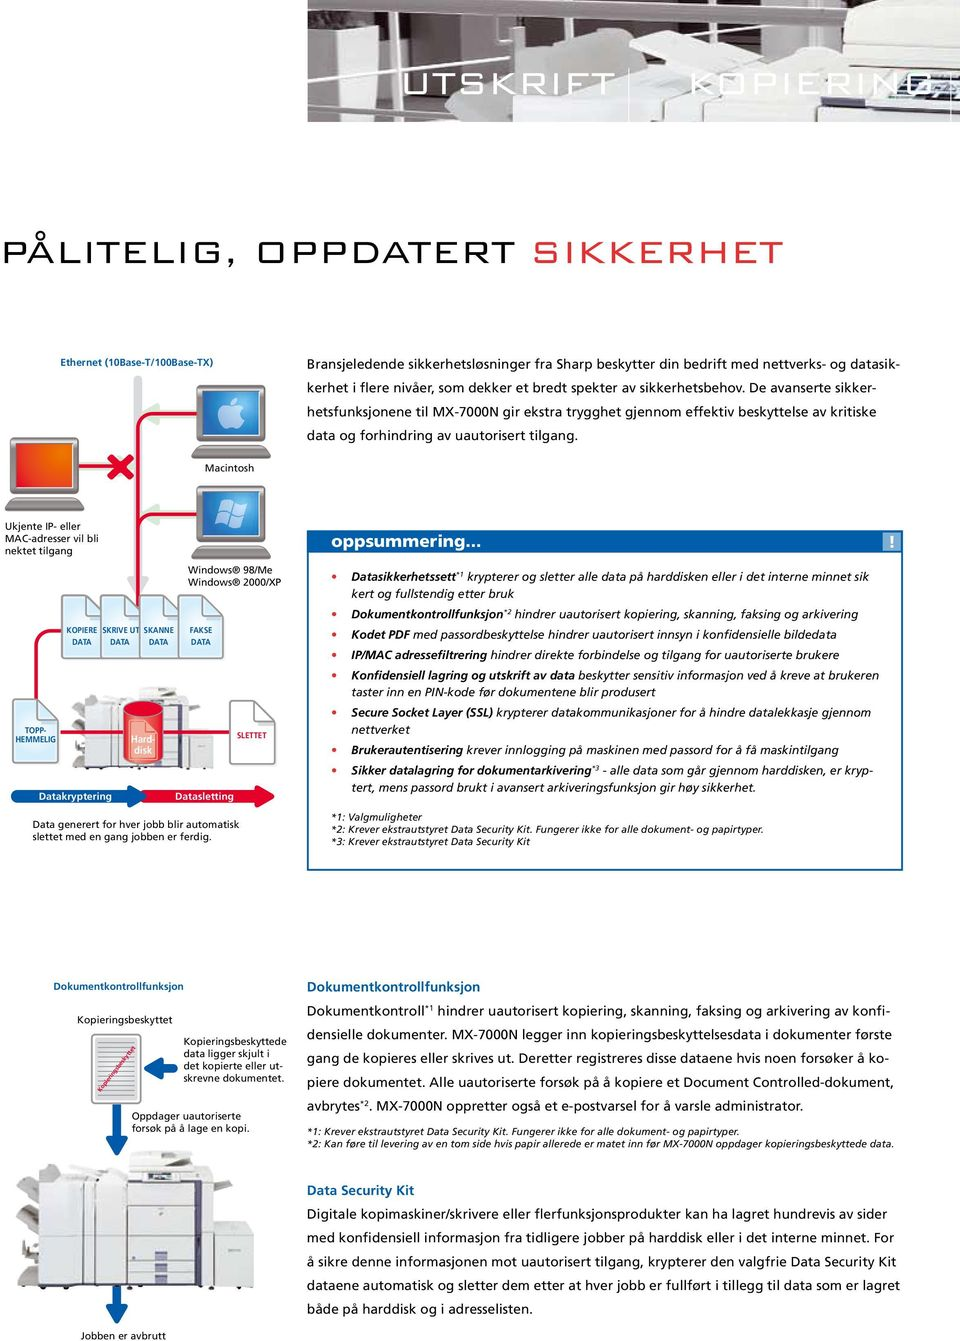 spekter spectrum av sikkerhetsbehov. of security needs.